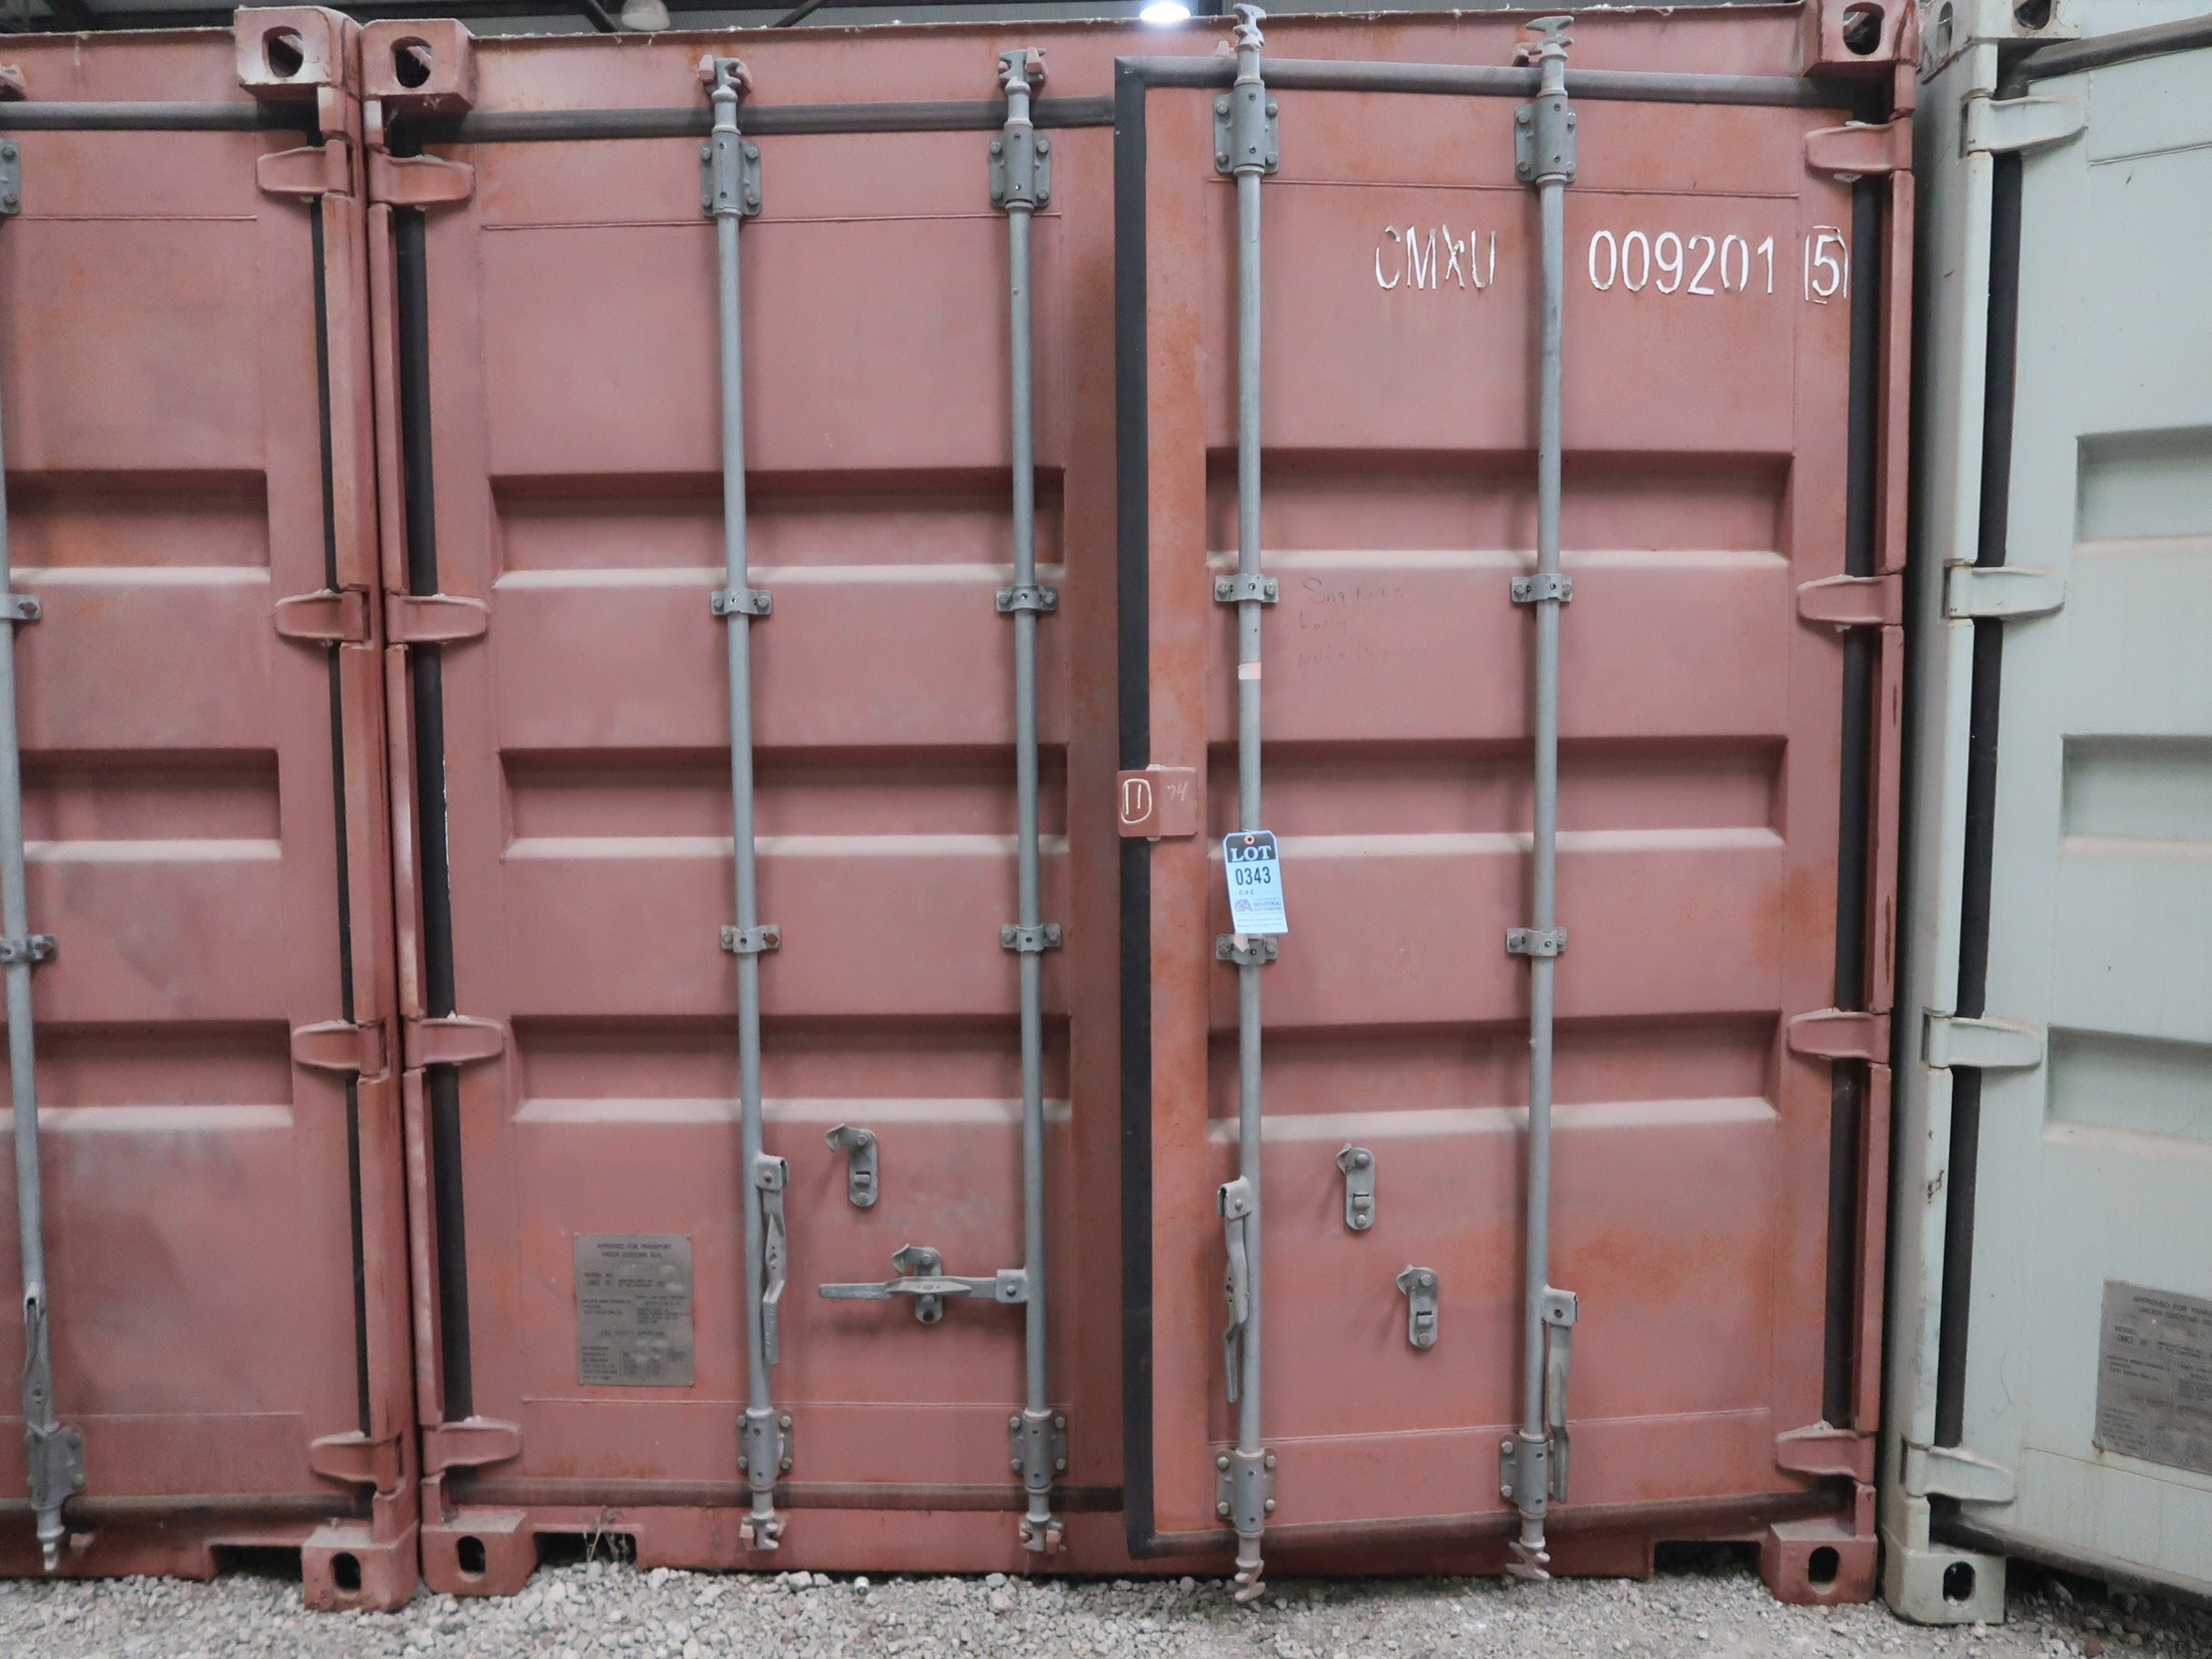 Lot 343 - 8' WIDE X 20' LONG CHARLESTON MARINE CONEX STORAGE CONTAINER WITH CONTENTS SAFETY EQUIPMENT